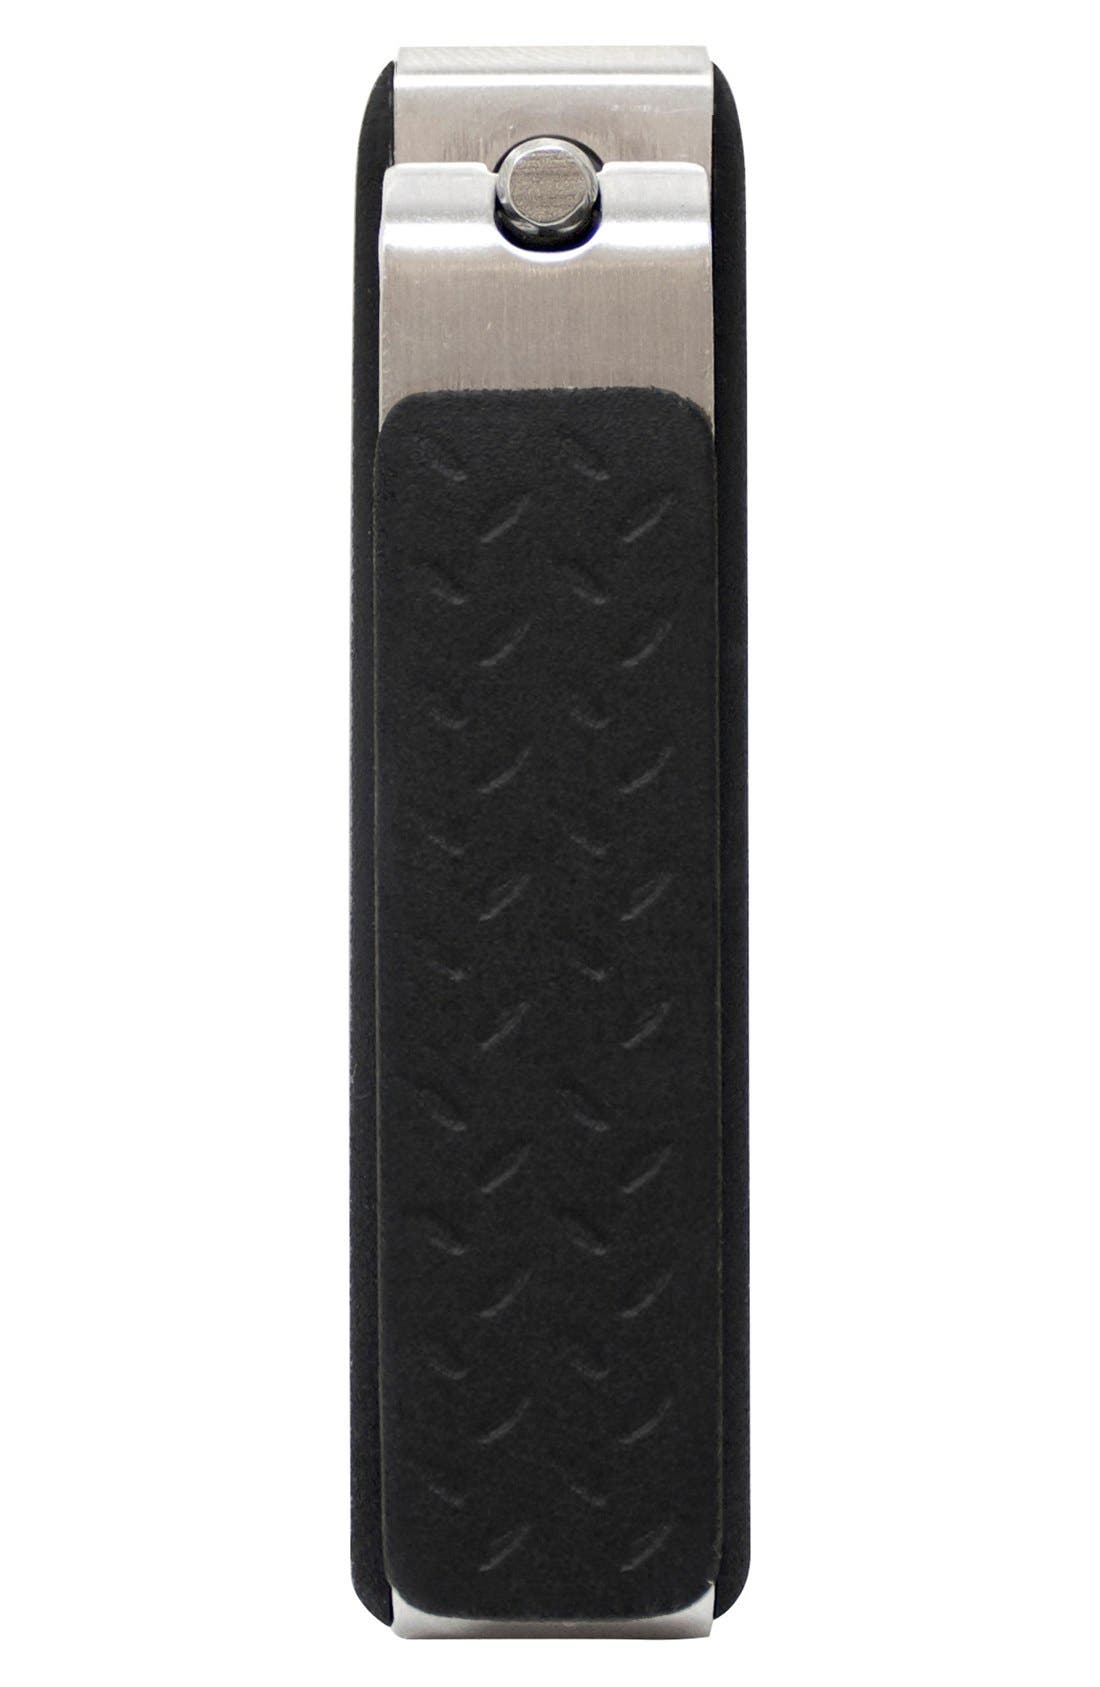 TWEEZERMAN Precision Grip Toenail Clipper